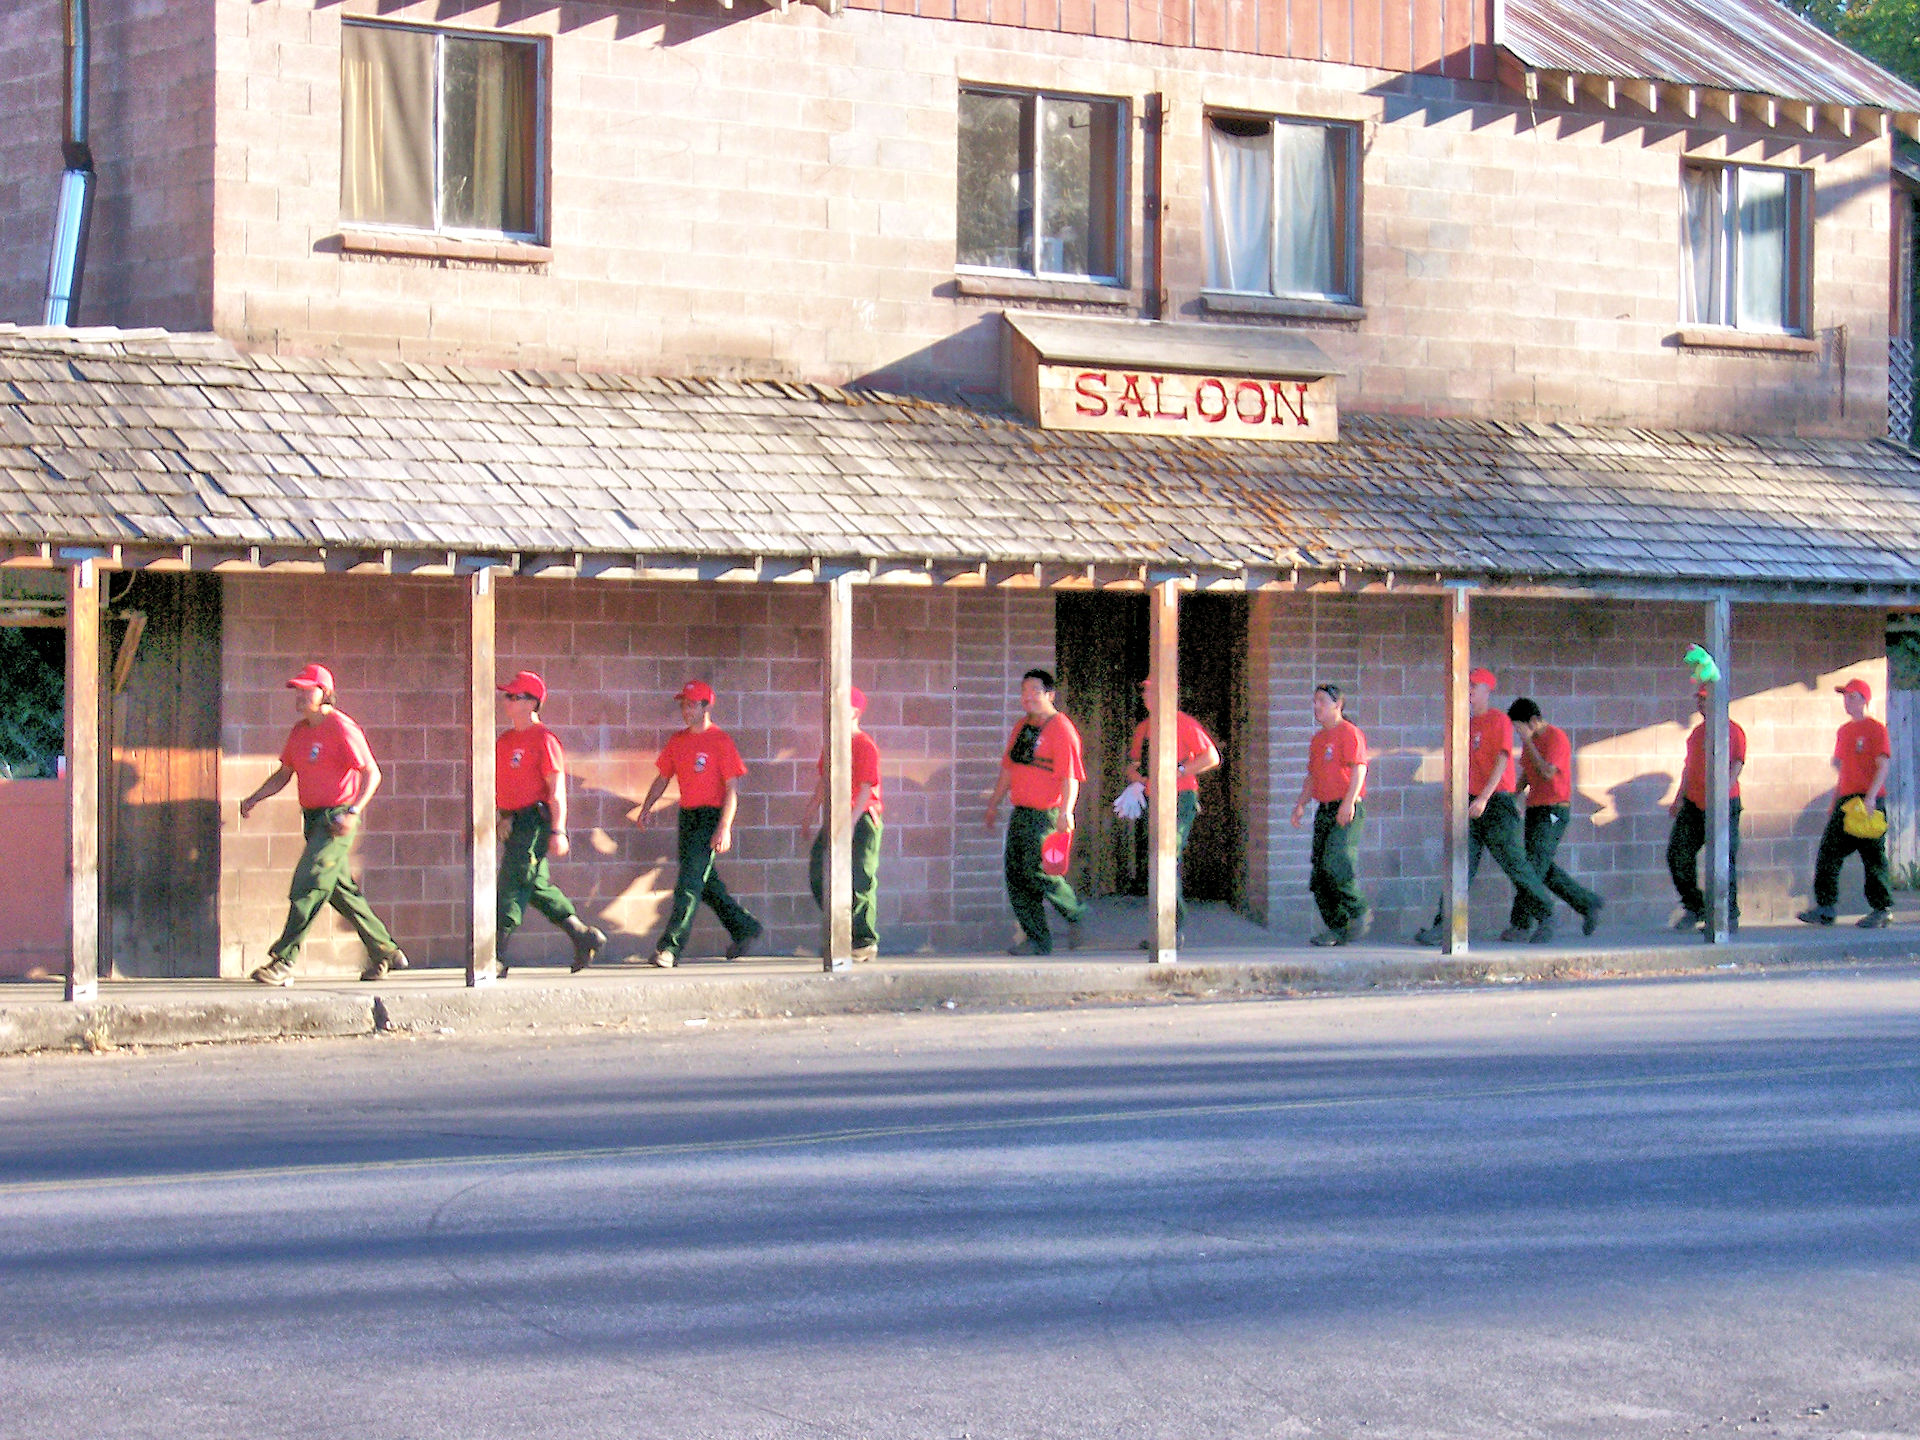 Firefighters walking in front of the saloon.